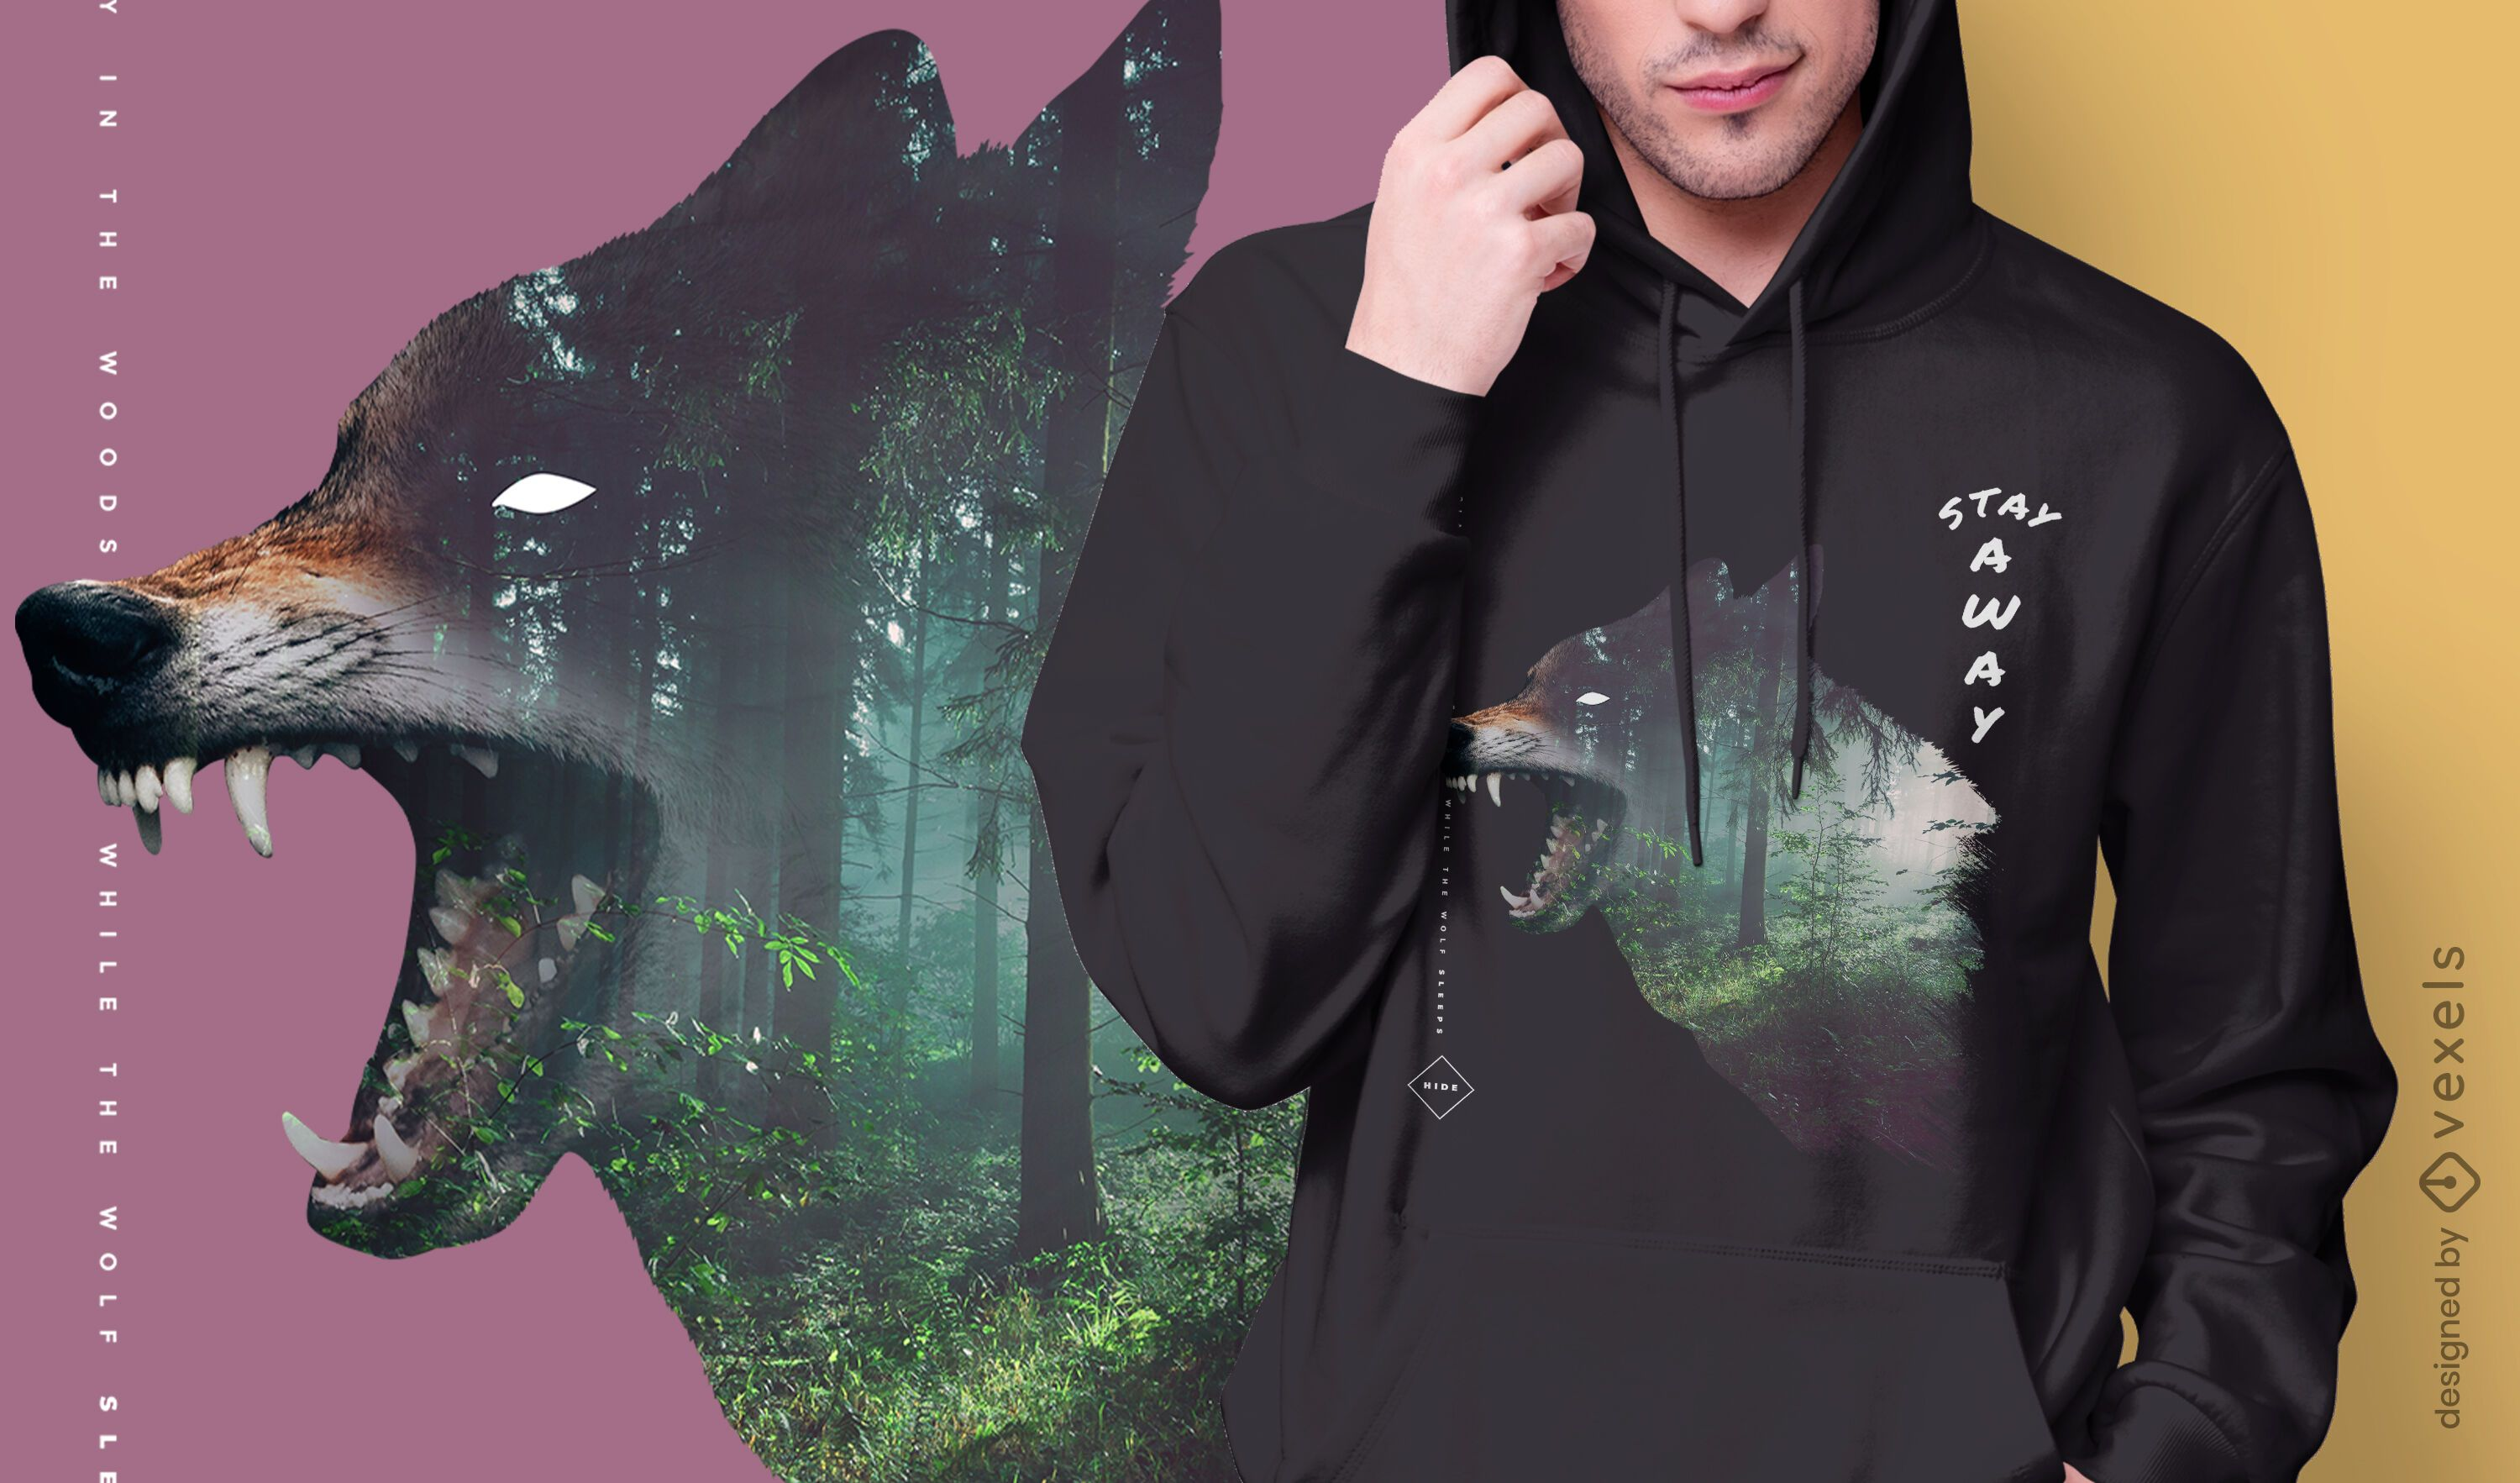 Wolf and forest double exposure t-shirt design